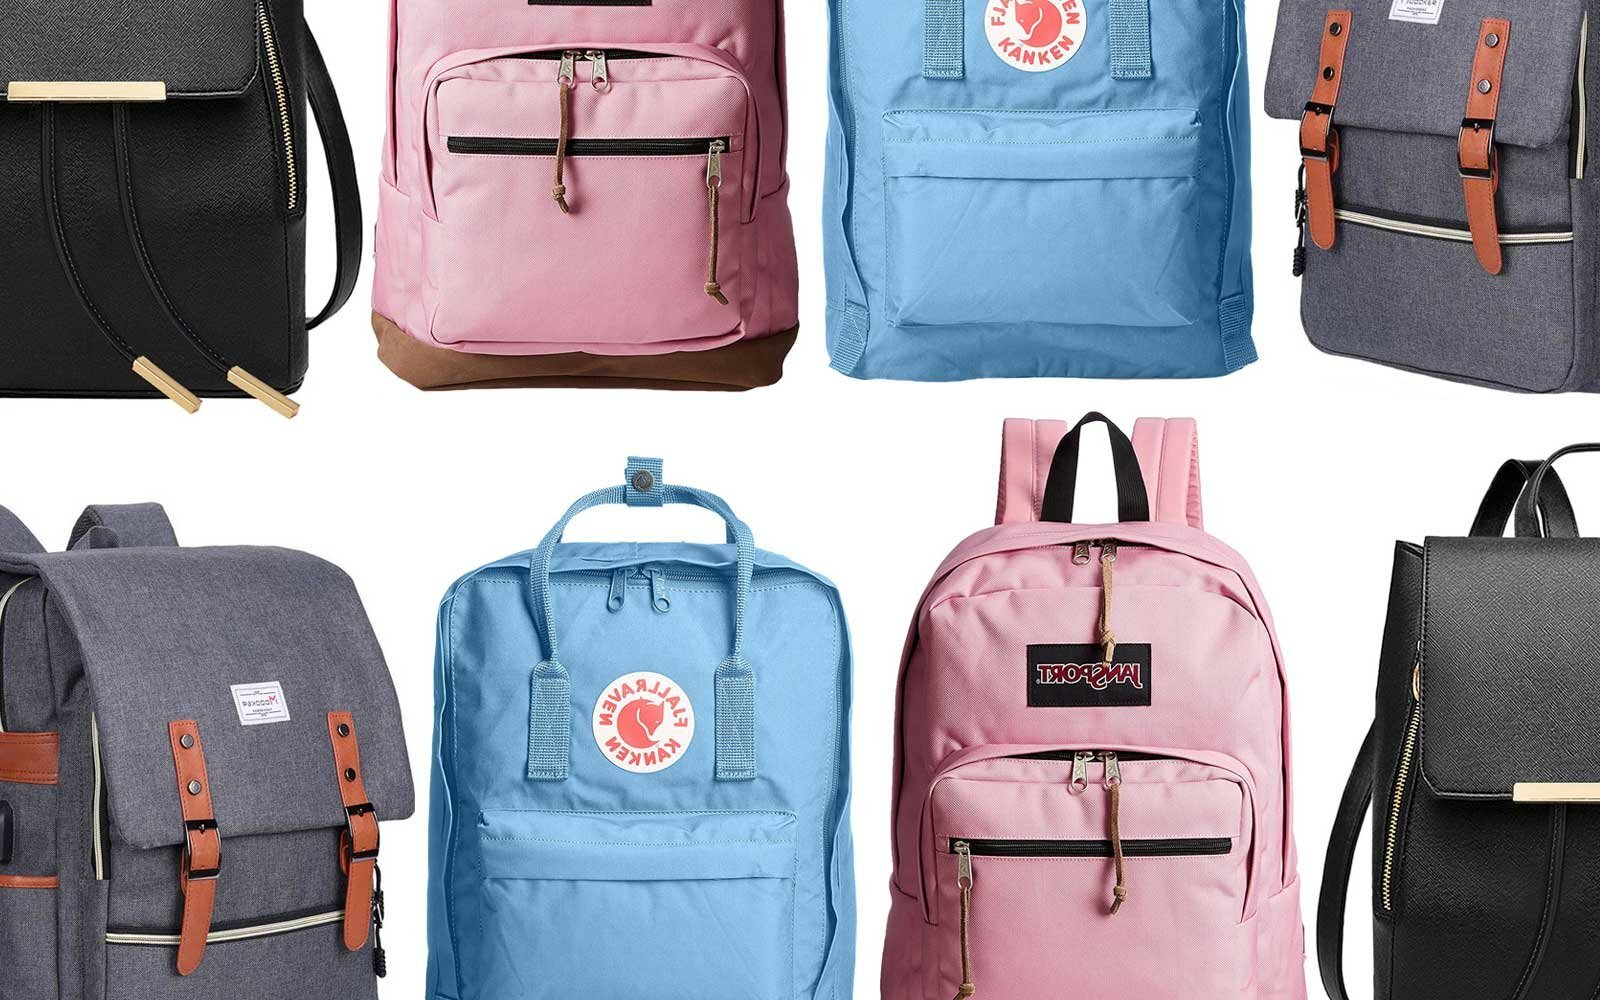 backpacks-BSBACKPACKS0218.jpg. Courtesy of Amazon d80d6fdbcb246